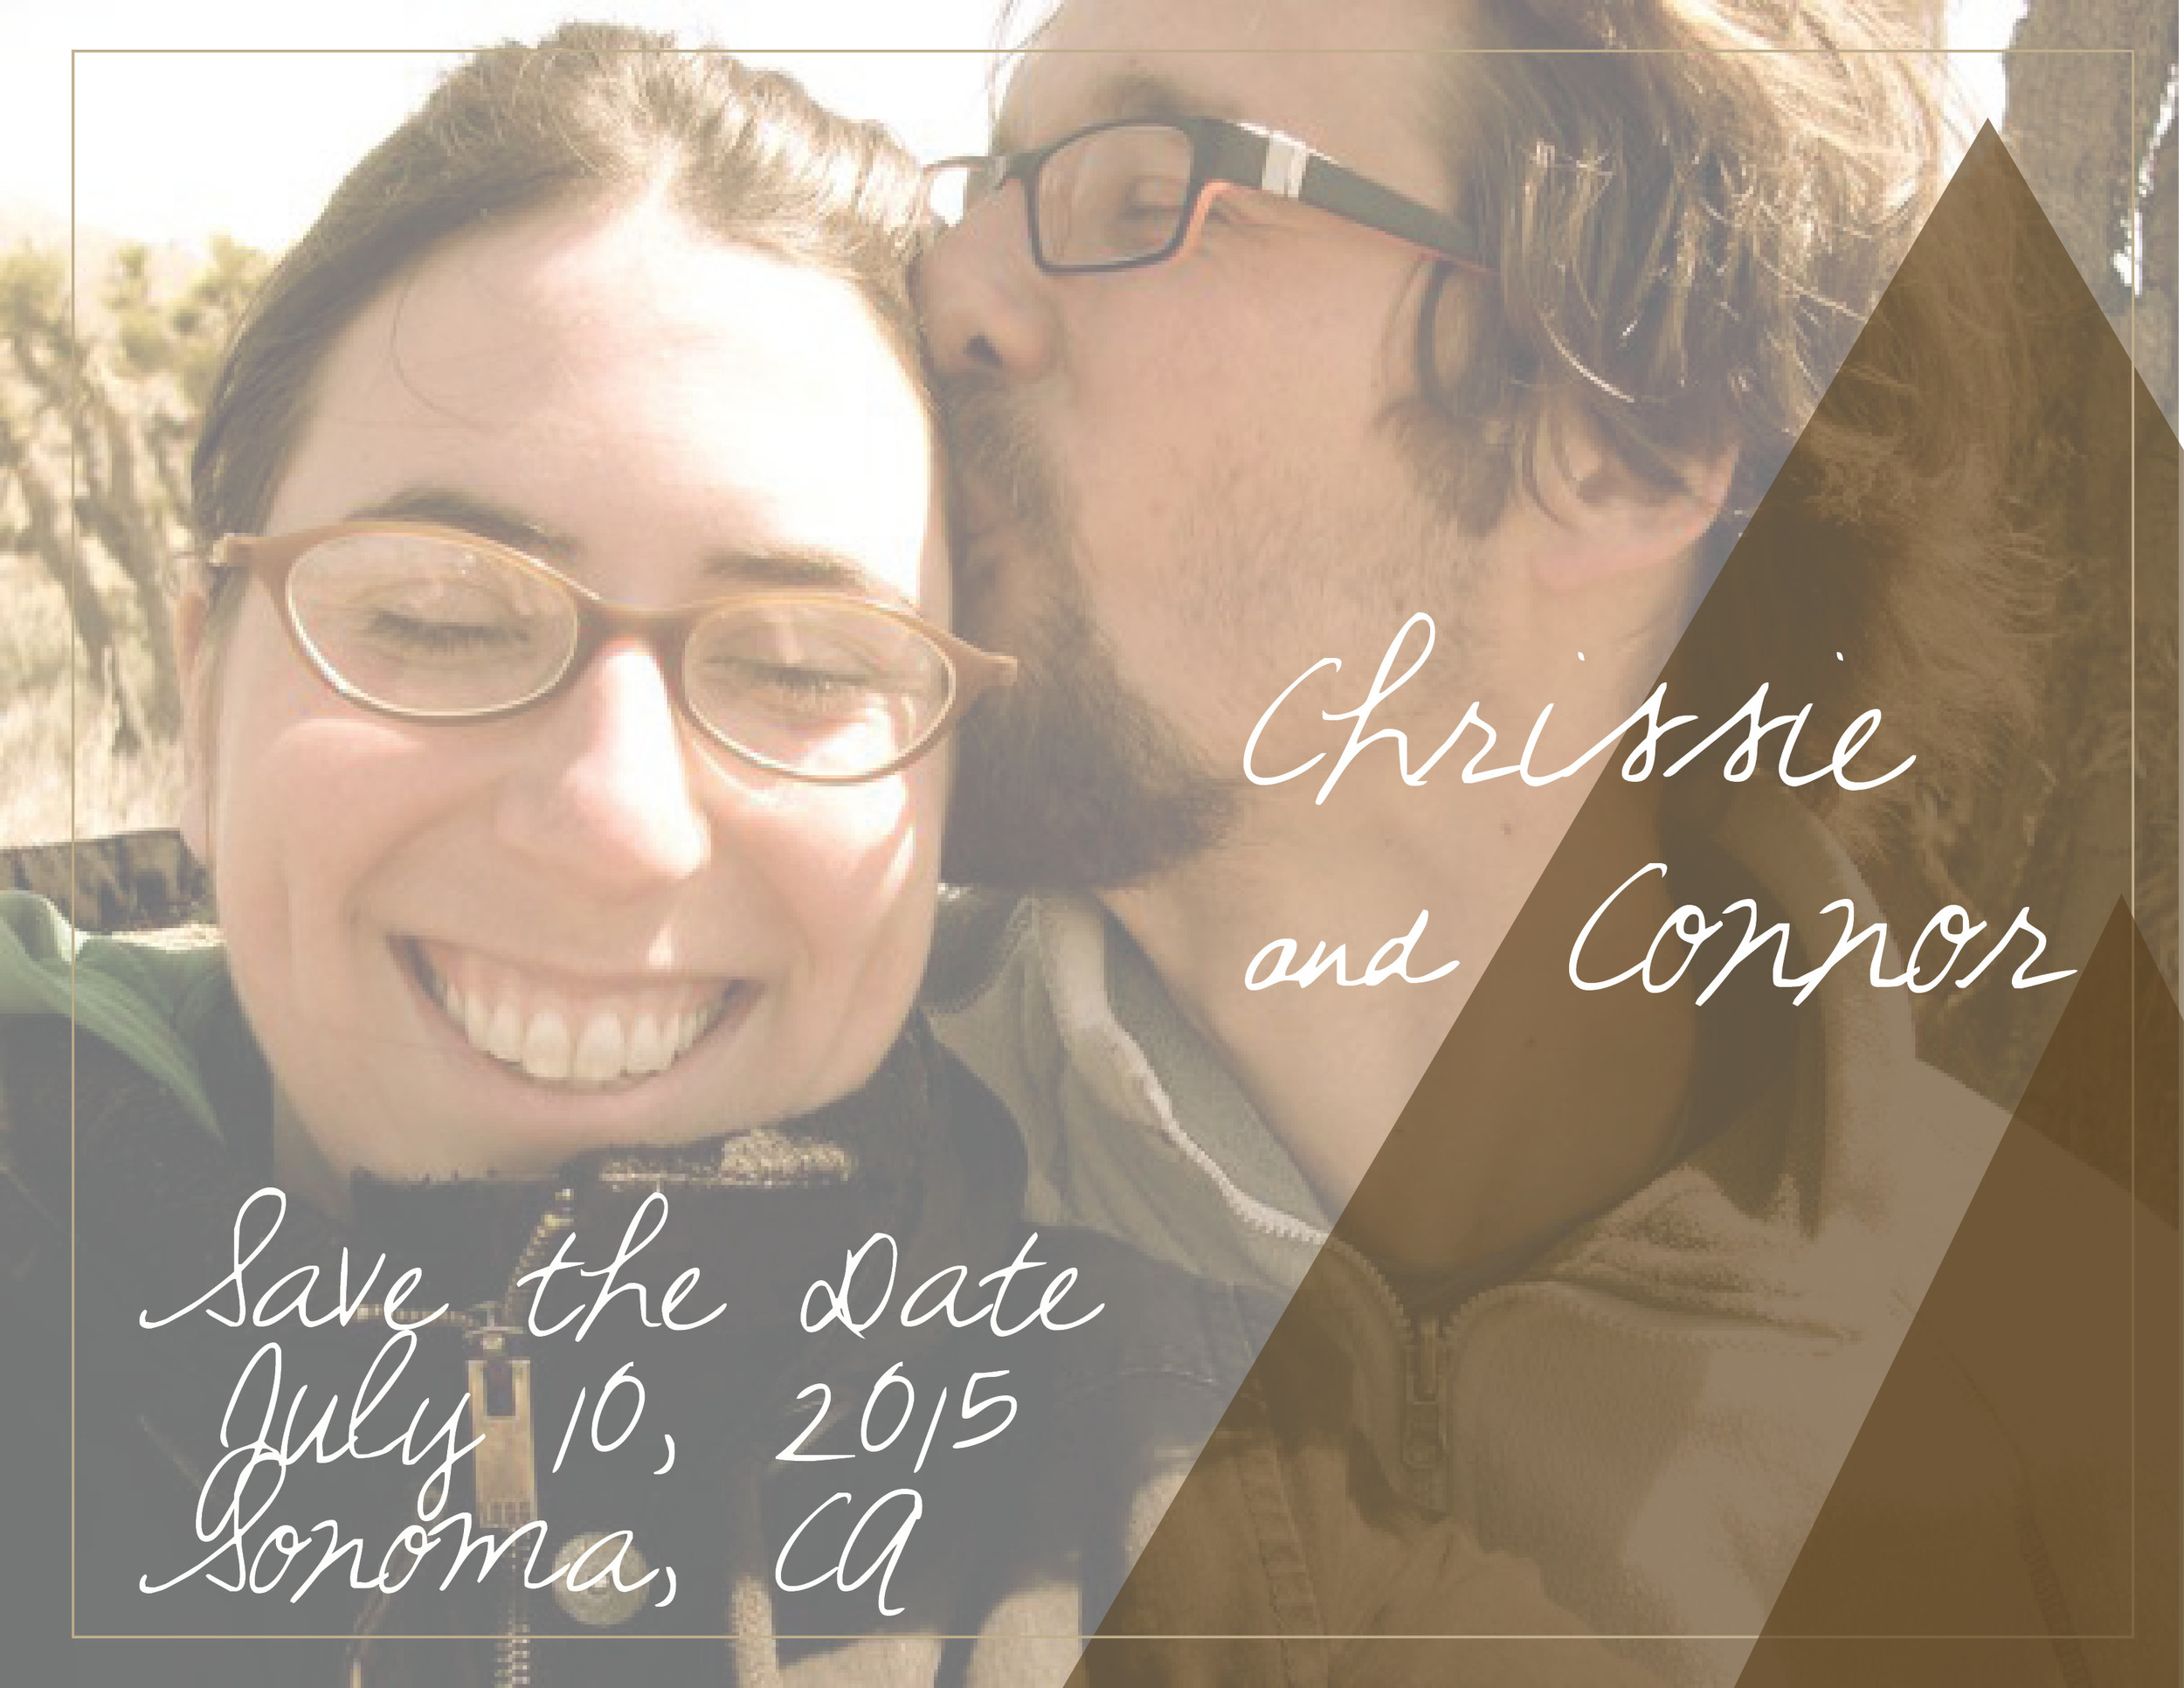 Save the Date card for C+C Wedding, 2014